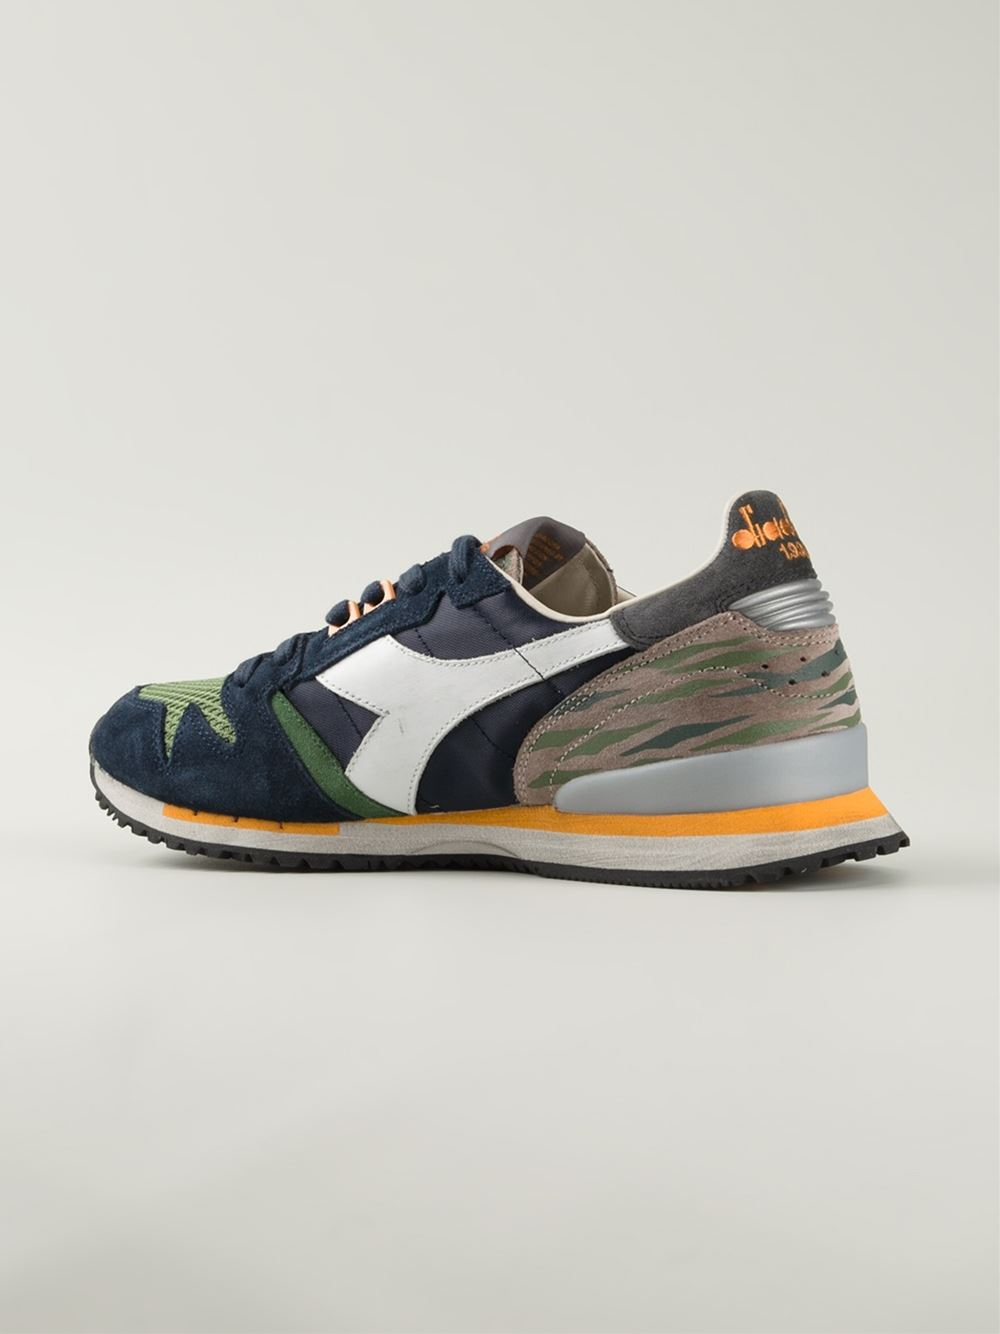 Lyst - Diadora Lace Up Retro Sneakers in Green for Men